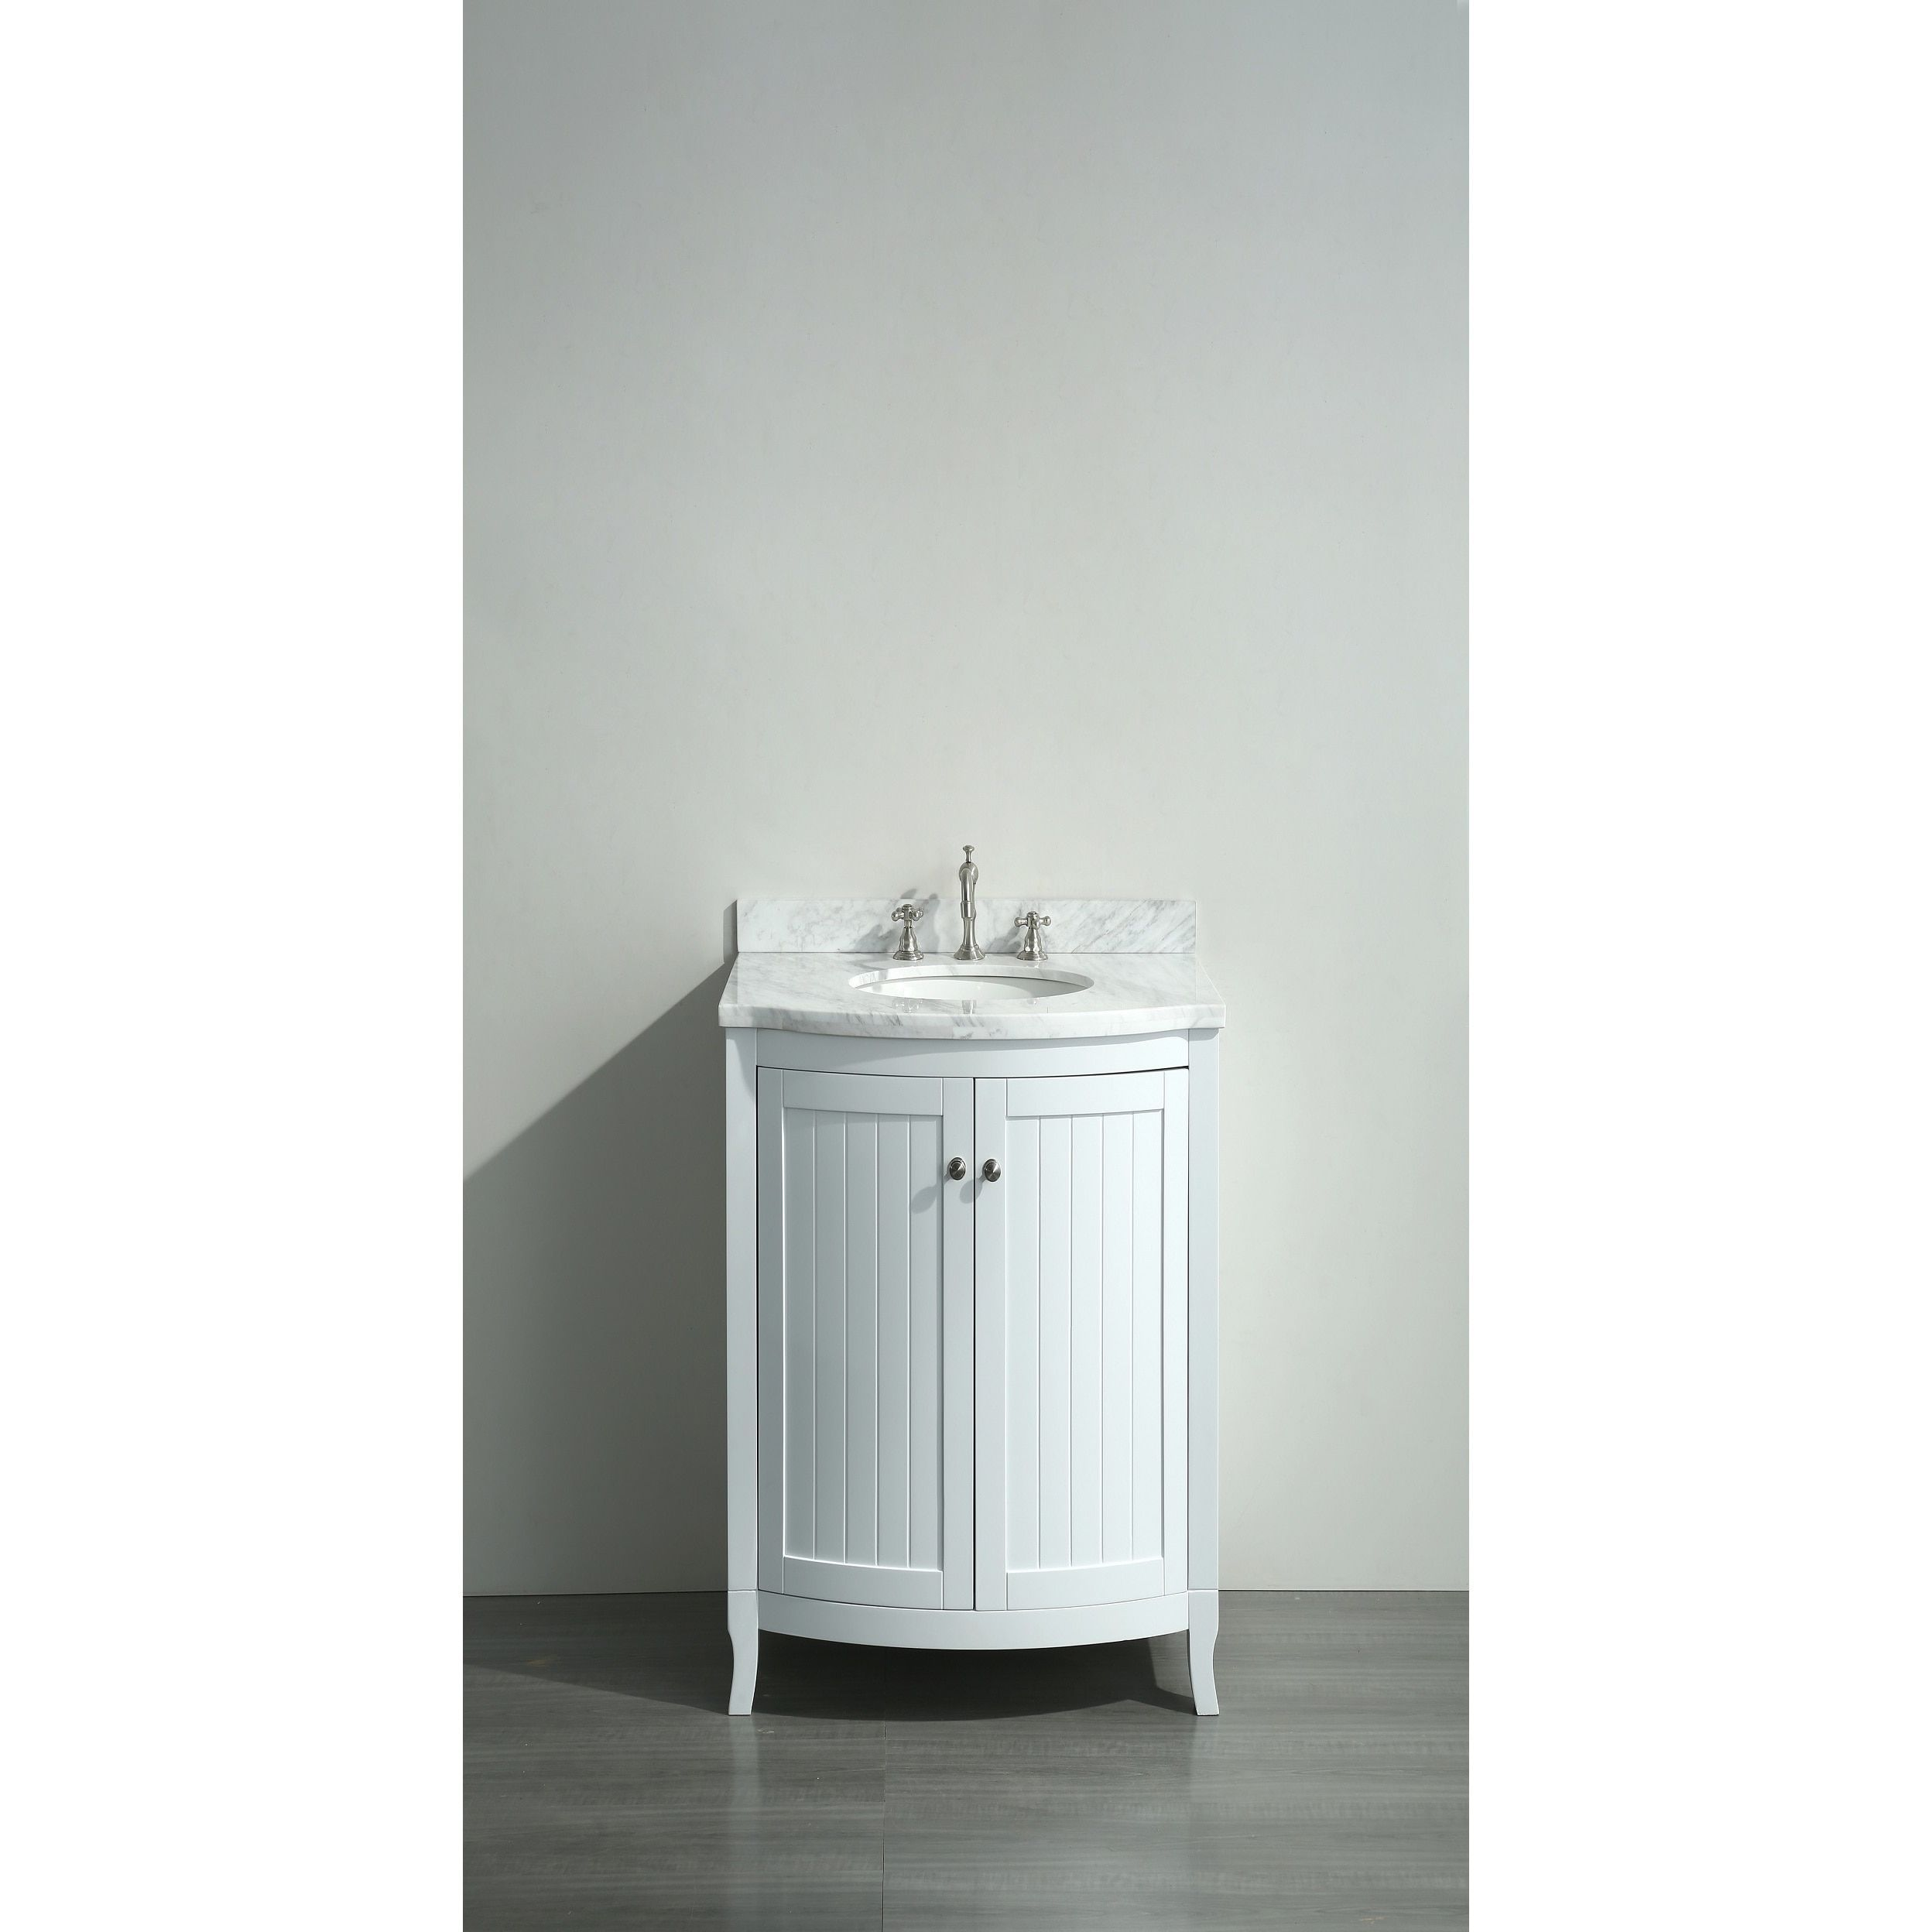 htsrec inch rafterhouse photos ideas cabinet of grey bath shaker peachy vanities inspiration vanity style inset bathroom great awesome com doors by trendy with